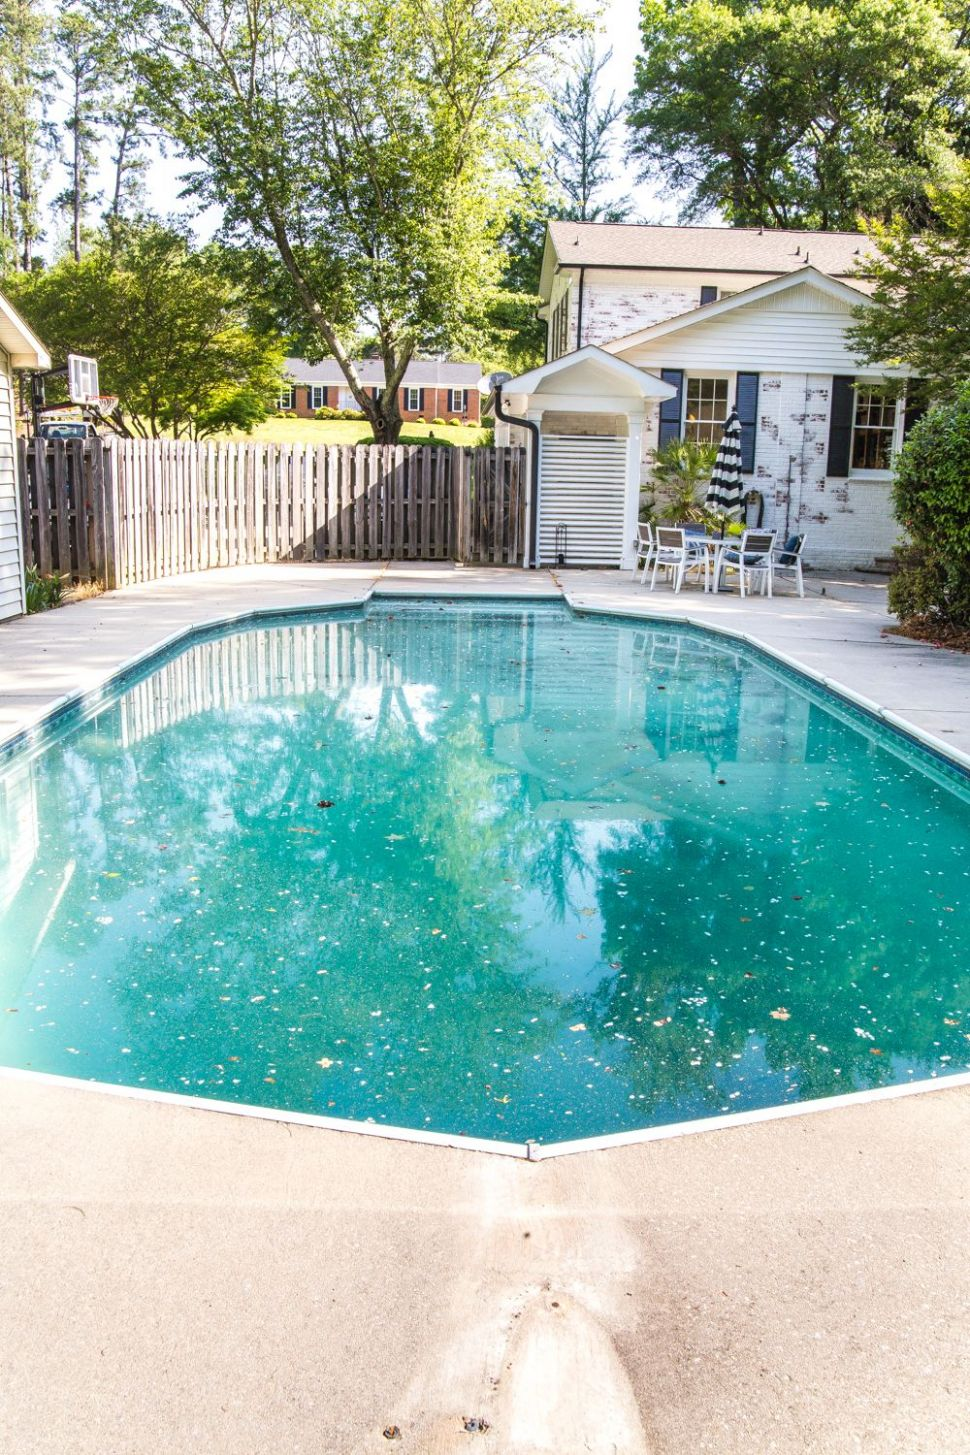 Backyard Before Tour and Pool Makeover Plans   Stair makeover ...